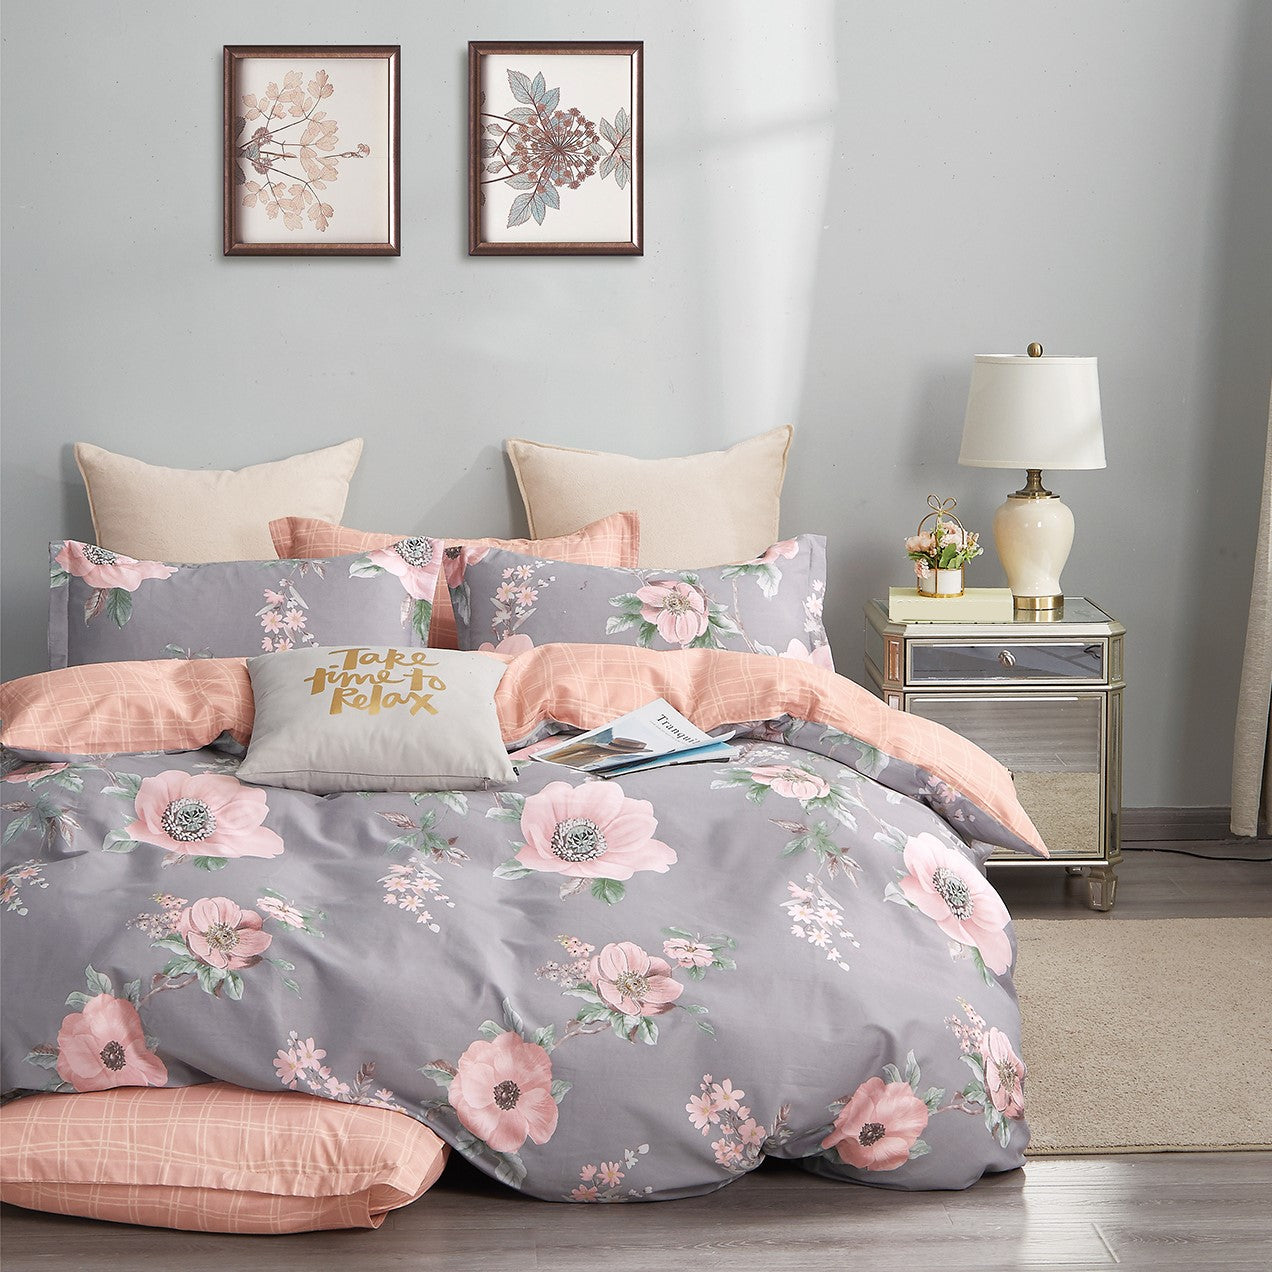 100% Natural Combed Cotton 930TC Bed Set (Felicity)